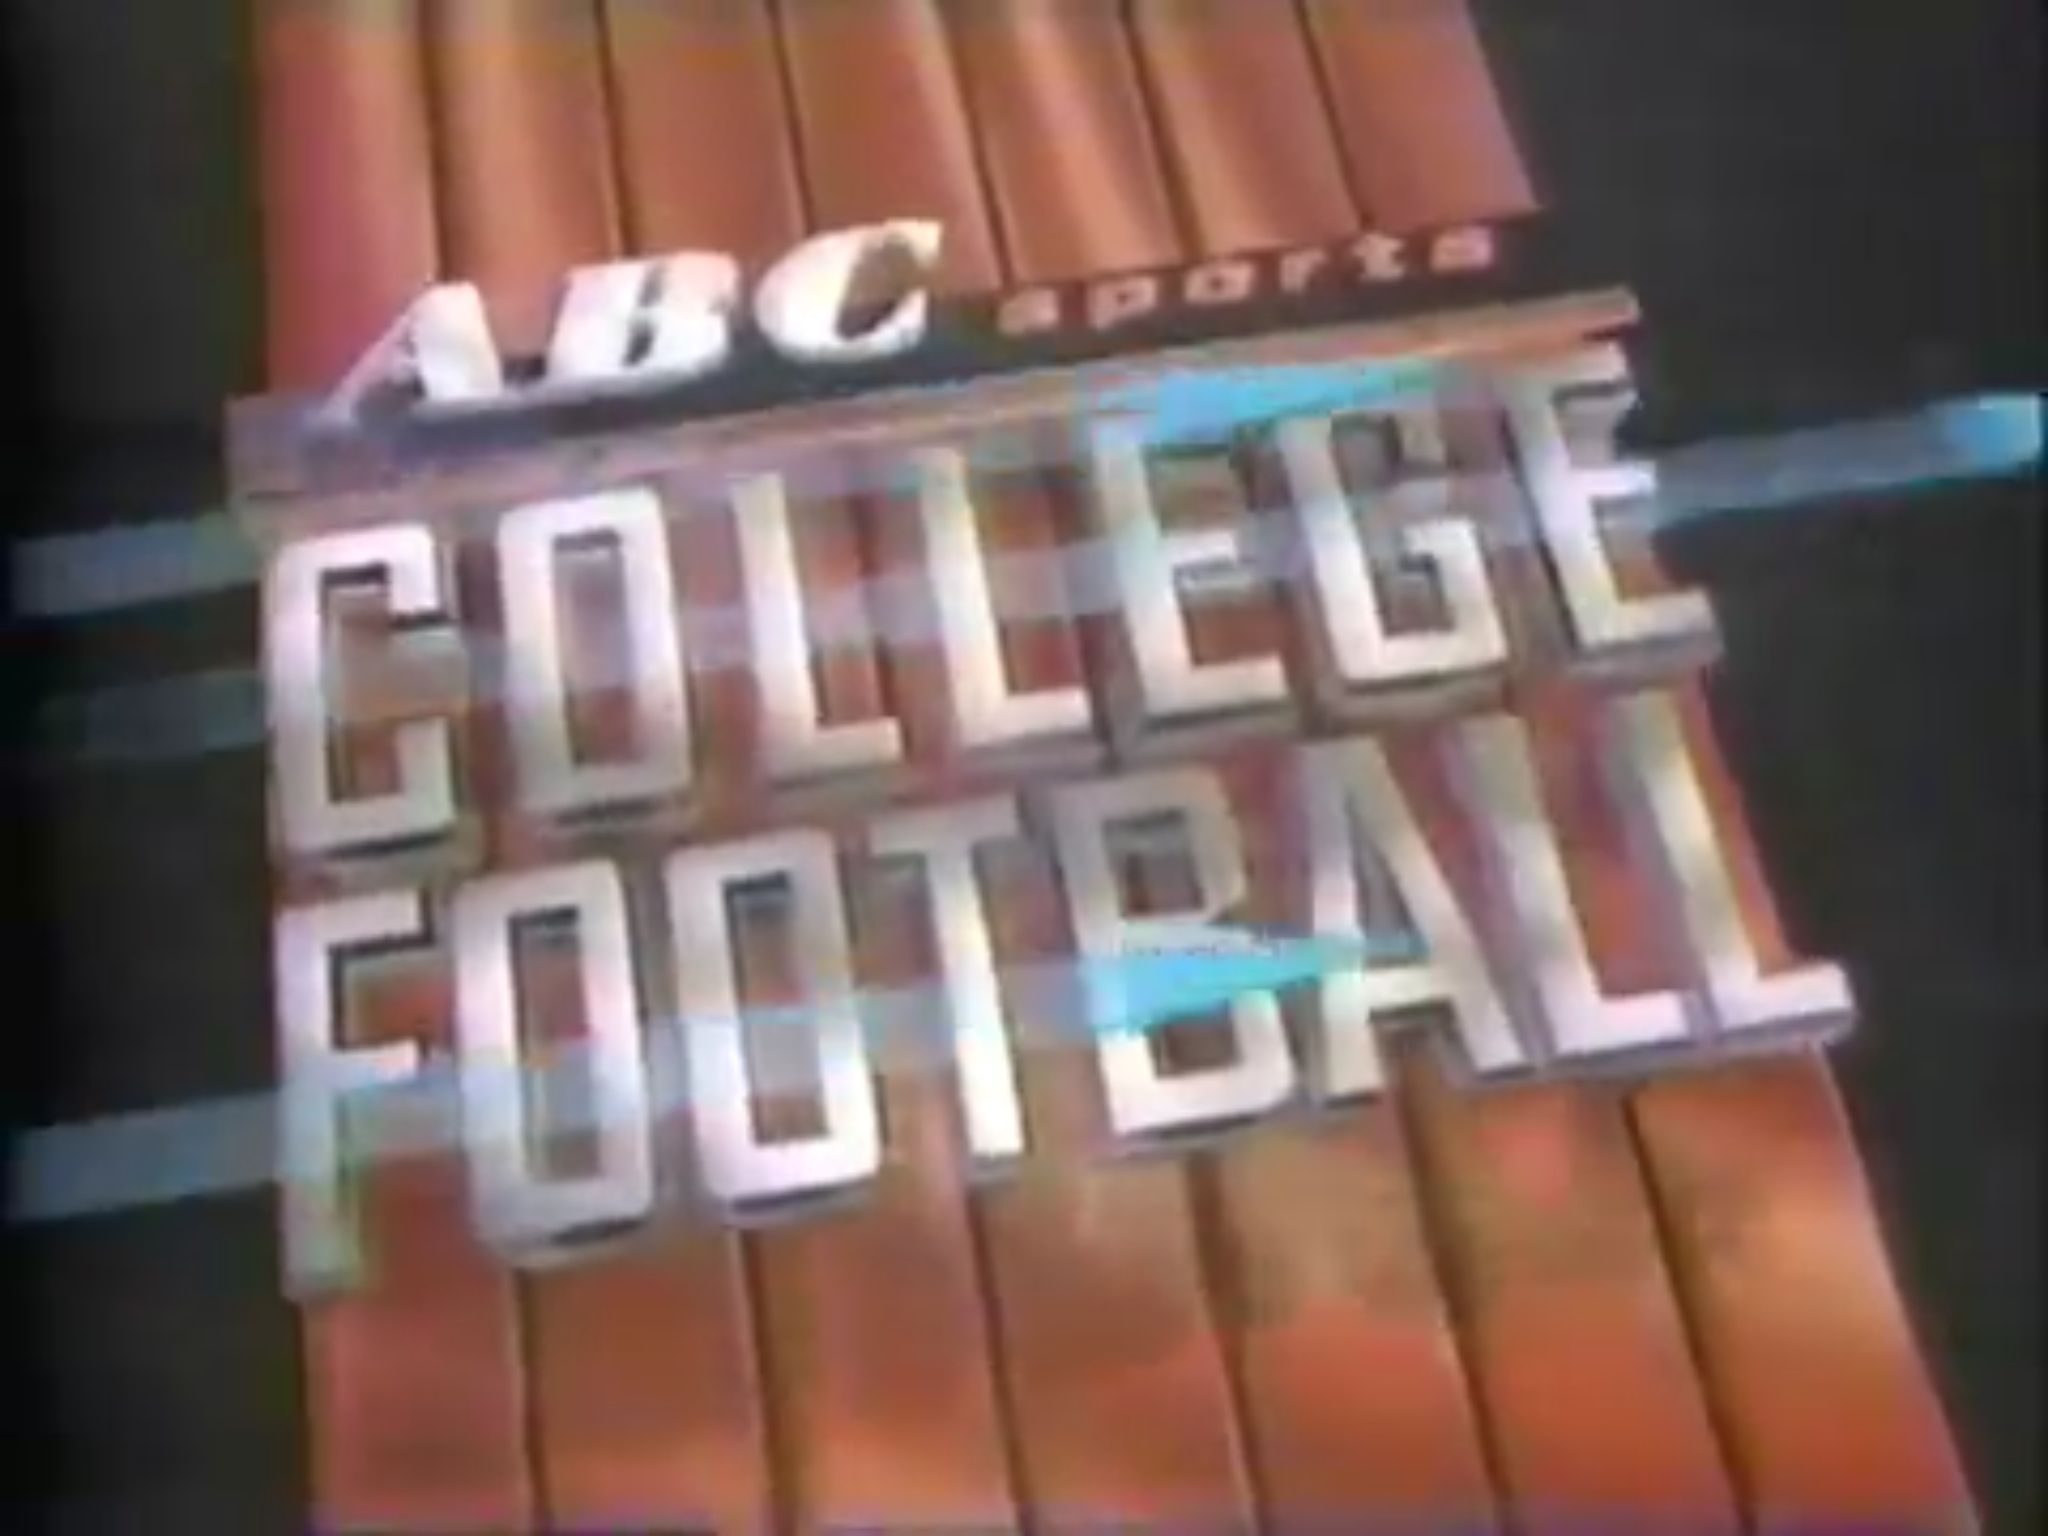 1989 College Football opening